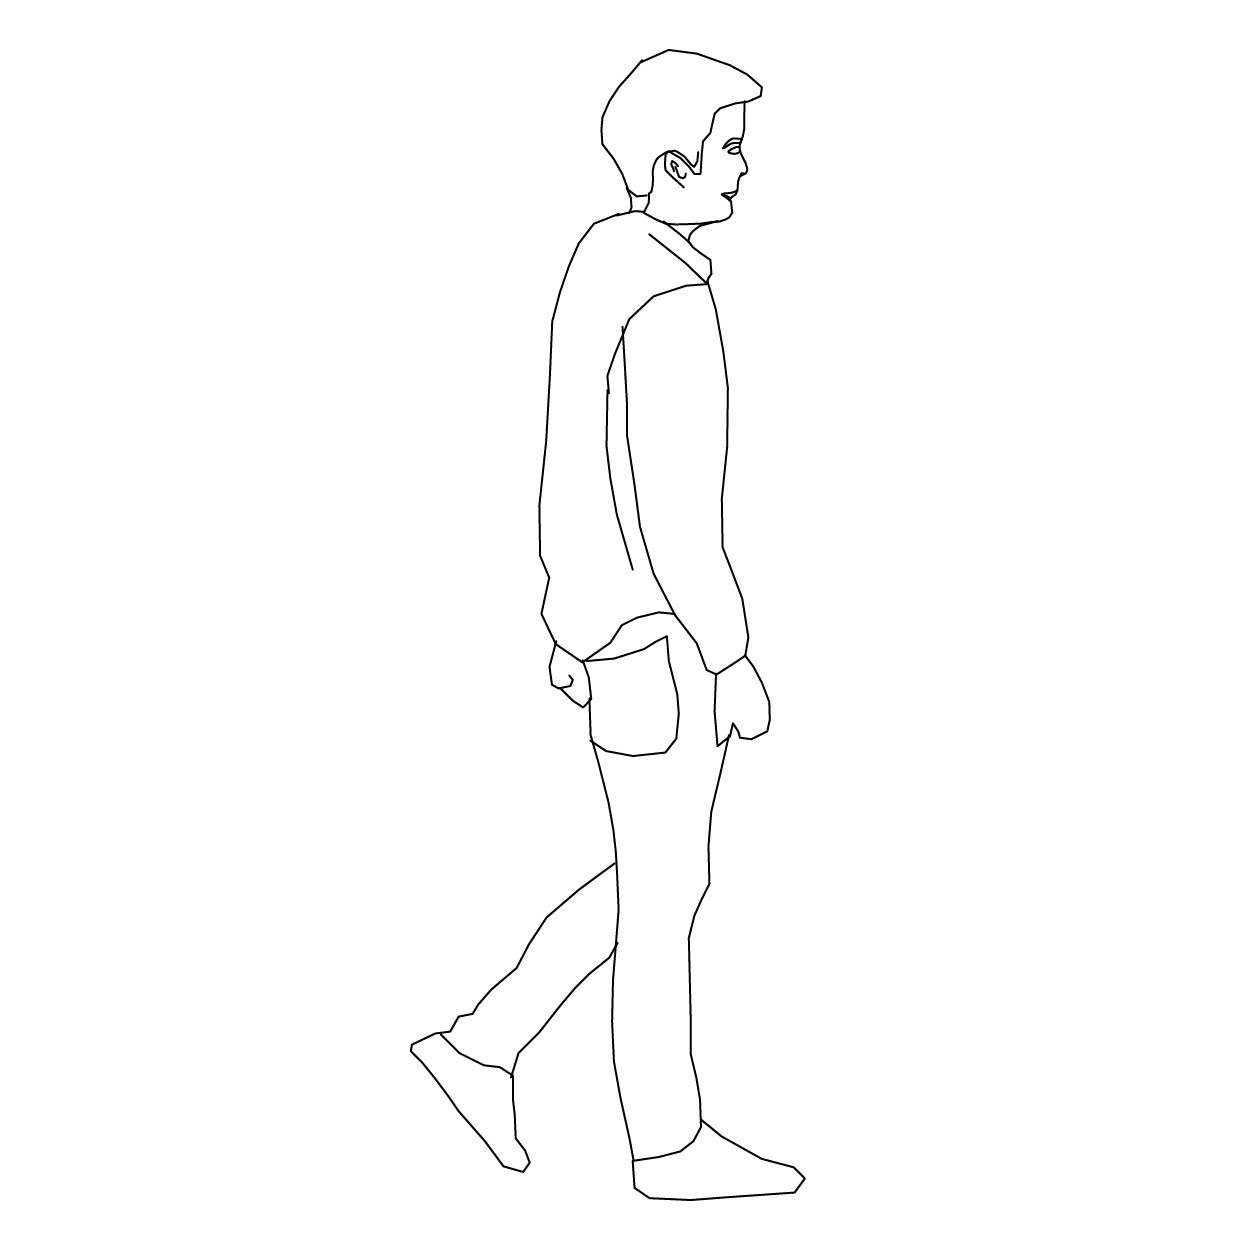 Standing Side View Drawing People Human Figure Sketches People Figures